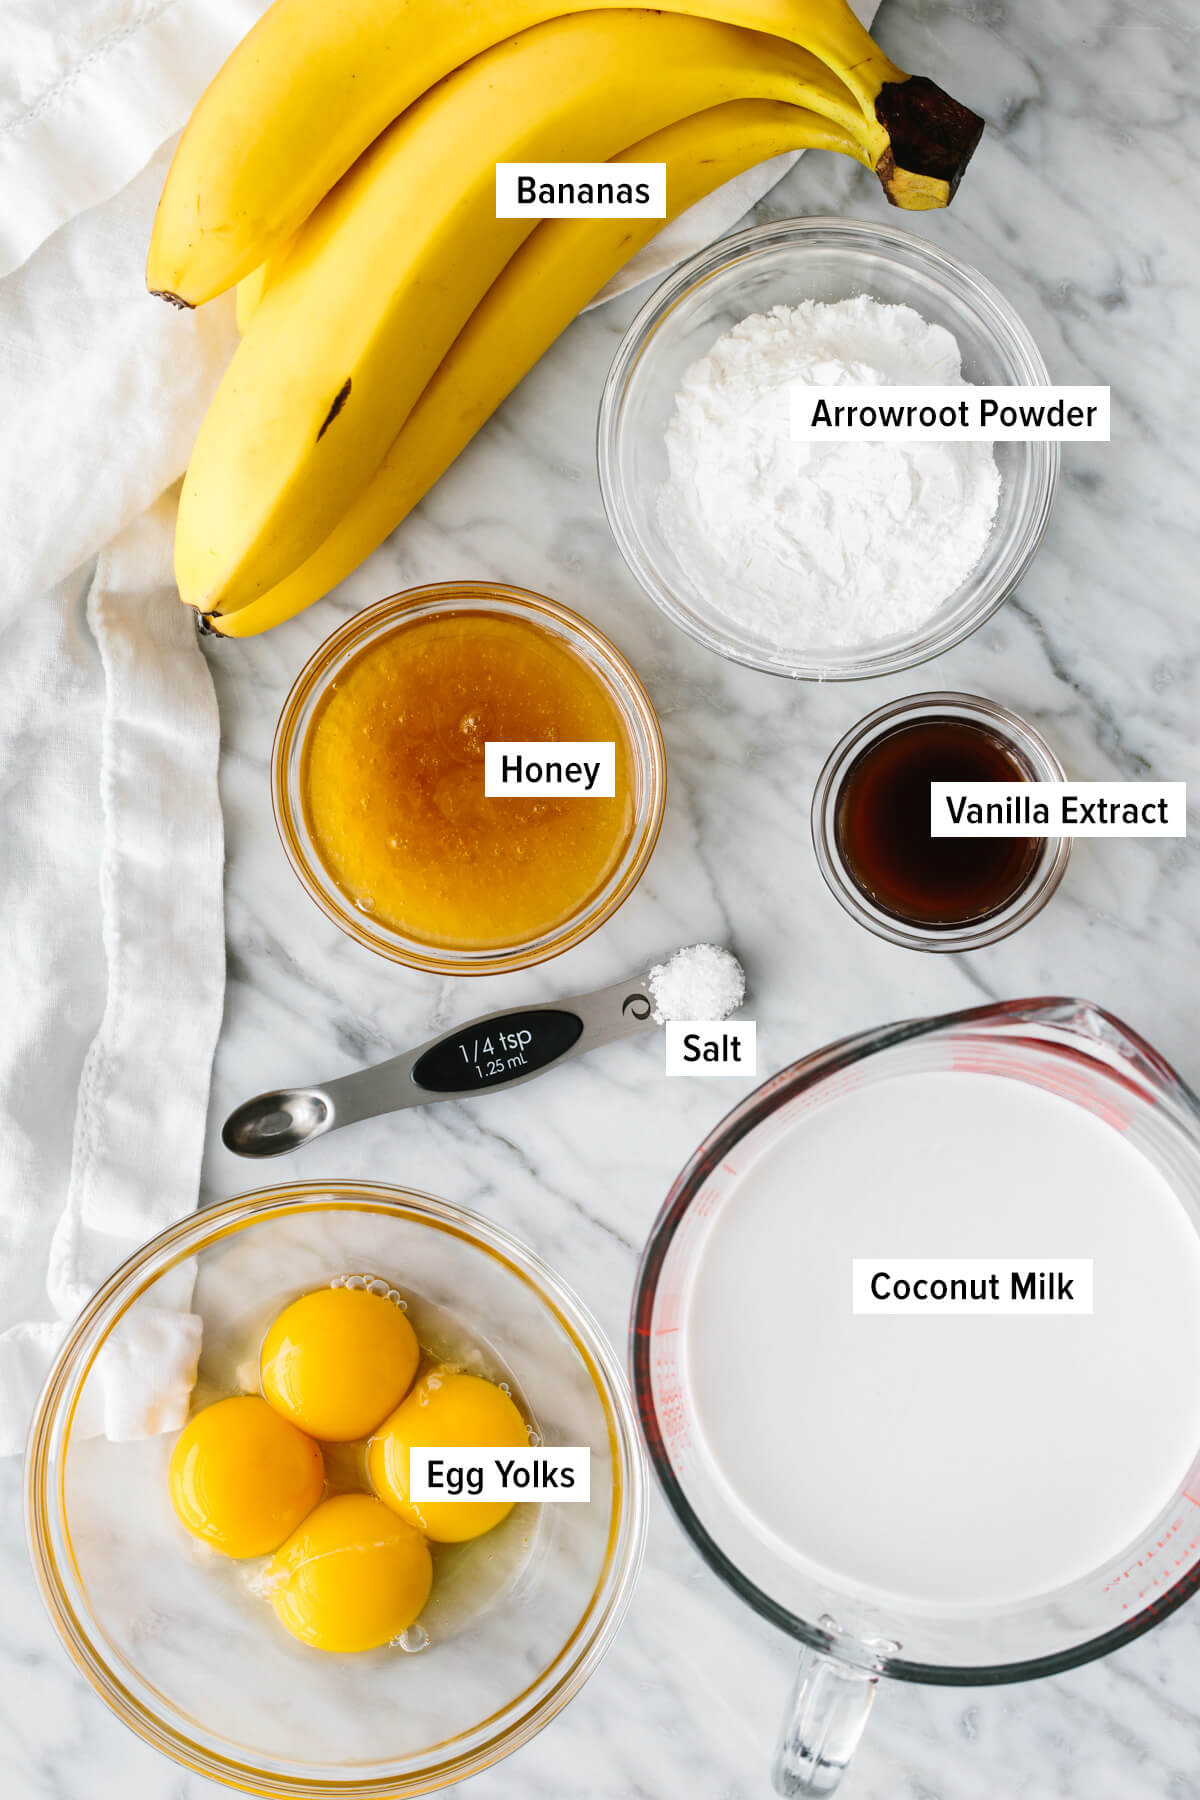 Ingredients to make banana pudding on a counter top.